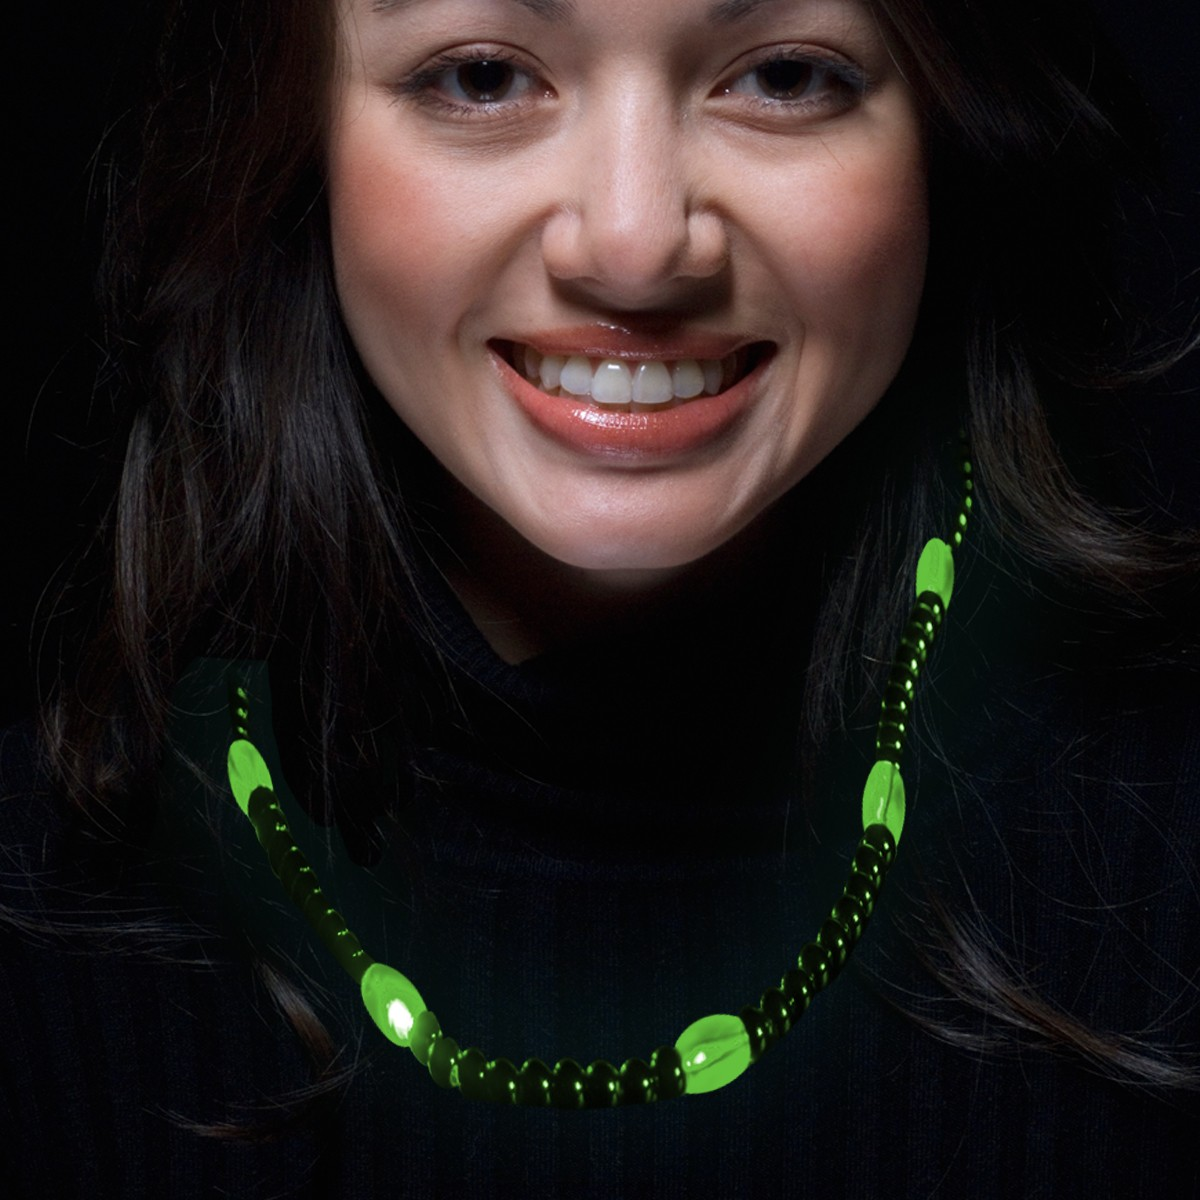 GREEN BEAD NECKLACE W 6 GREEN